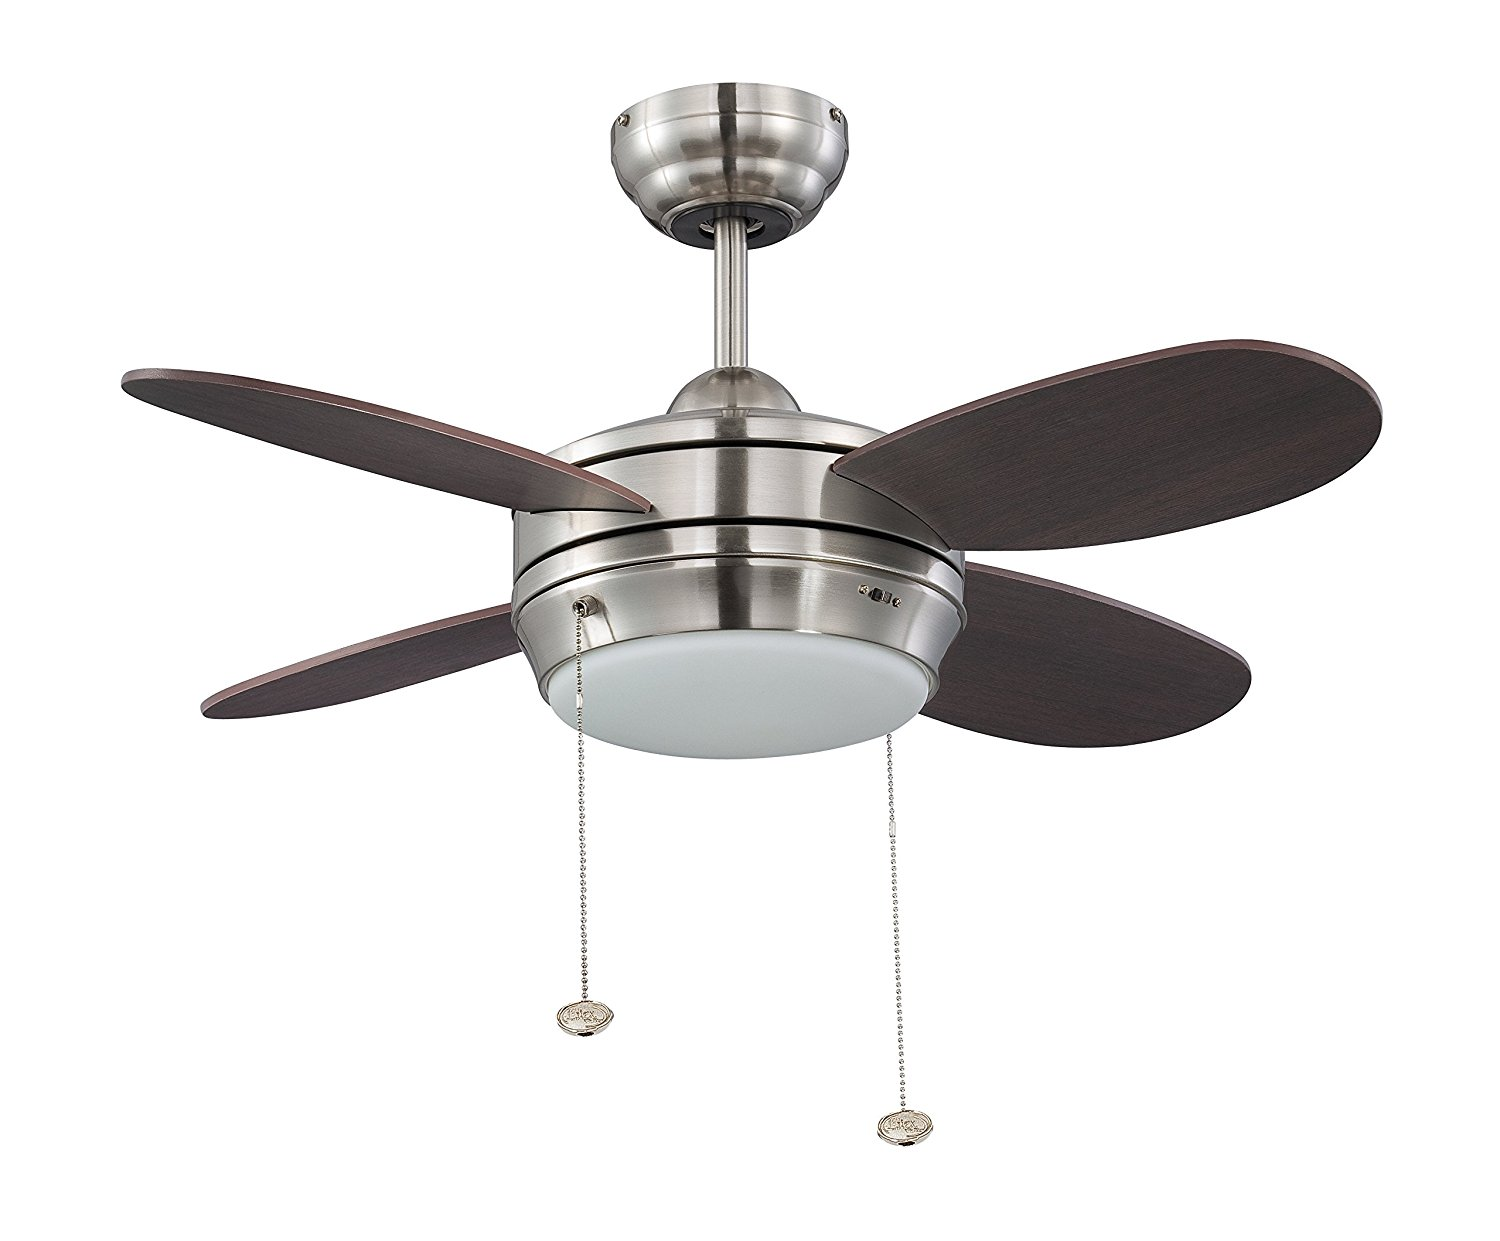 Litex E Mlv36bnk4lk1 Maksim Collection 36 Inch Ceiling Fan With Five Wench Wood Blades